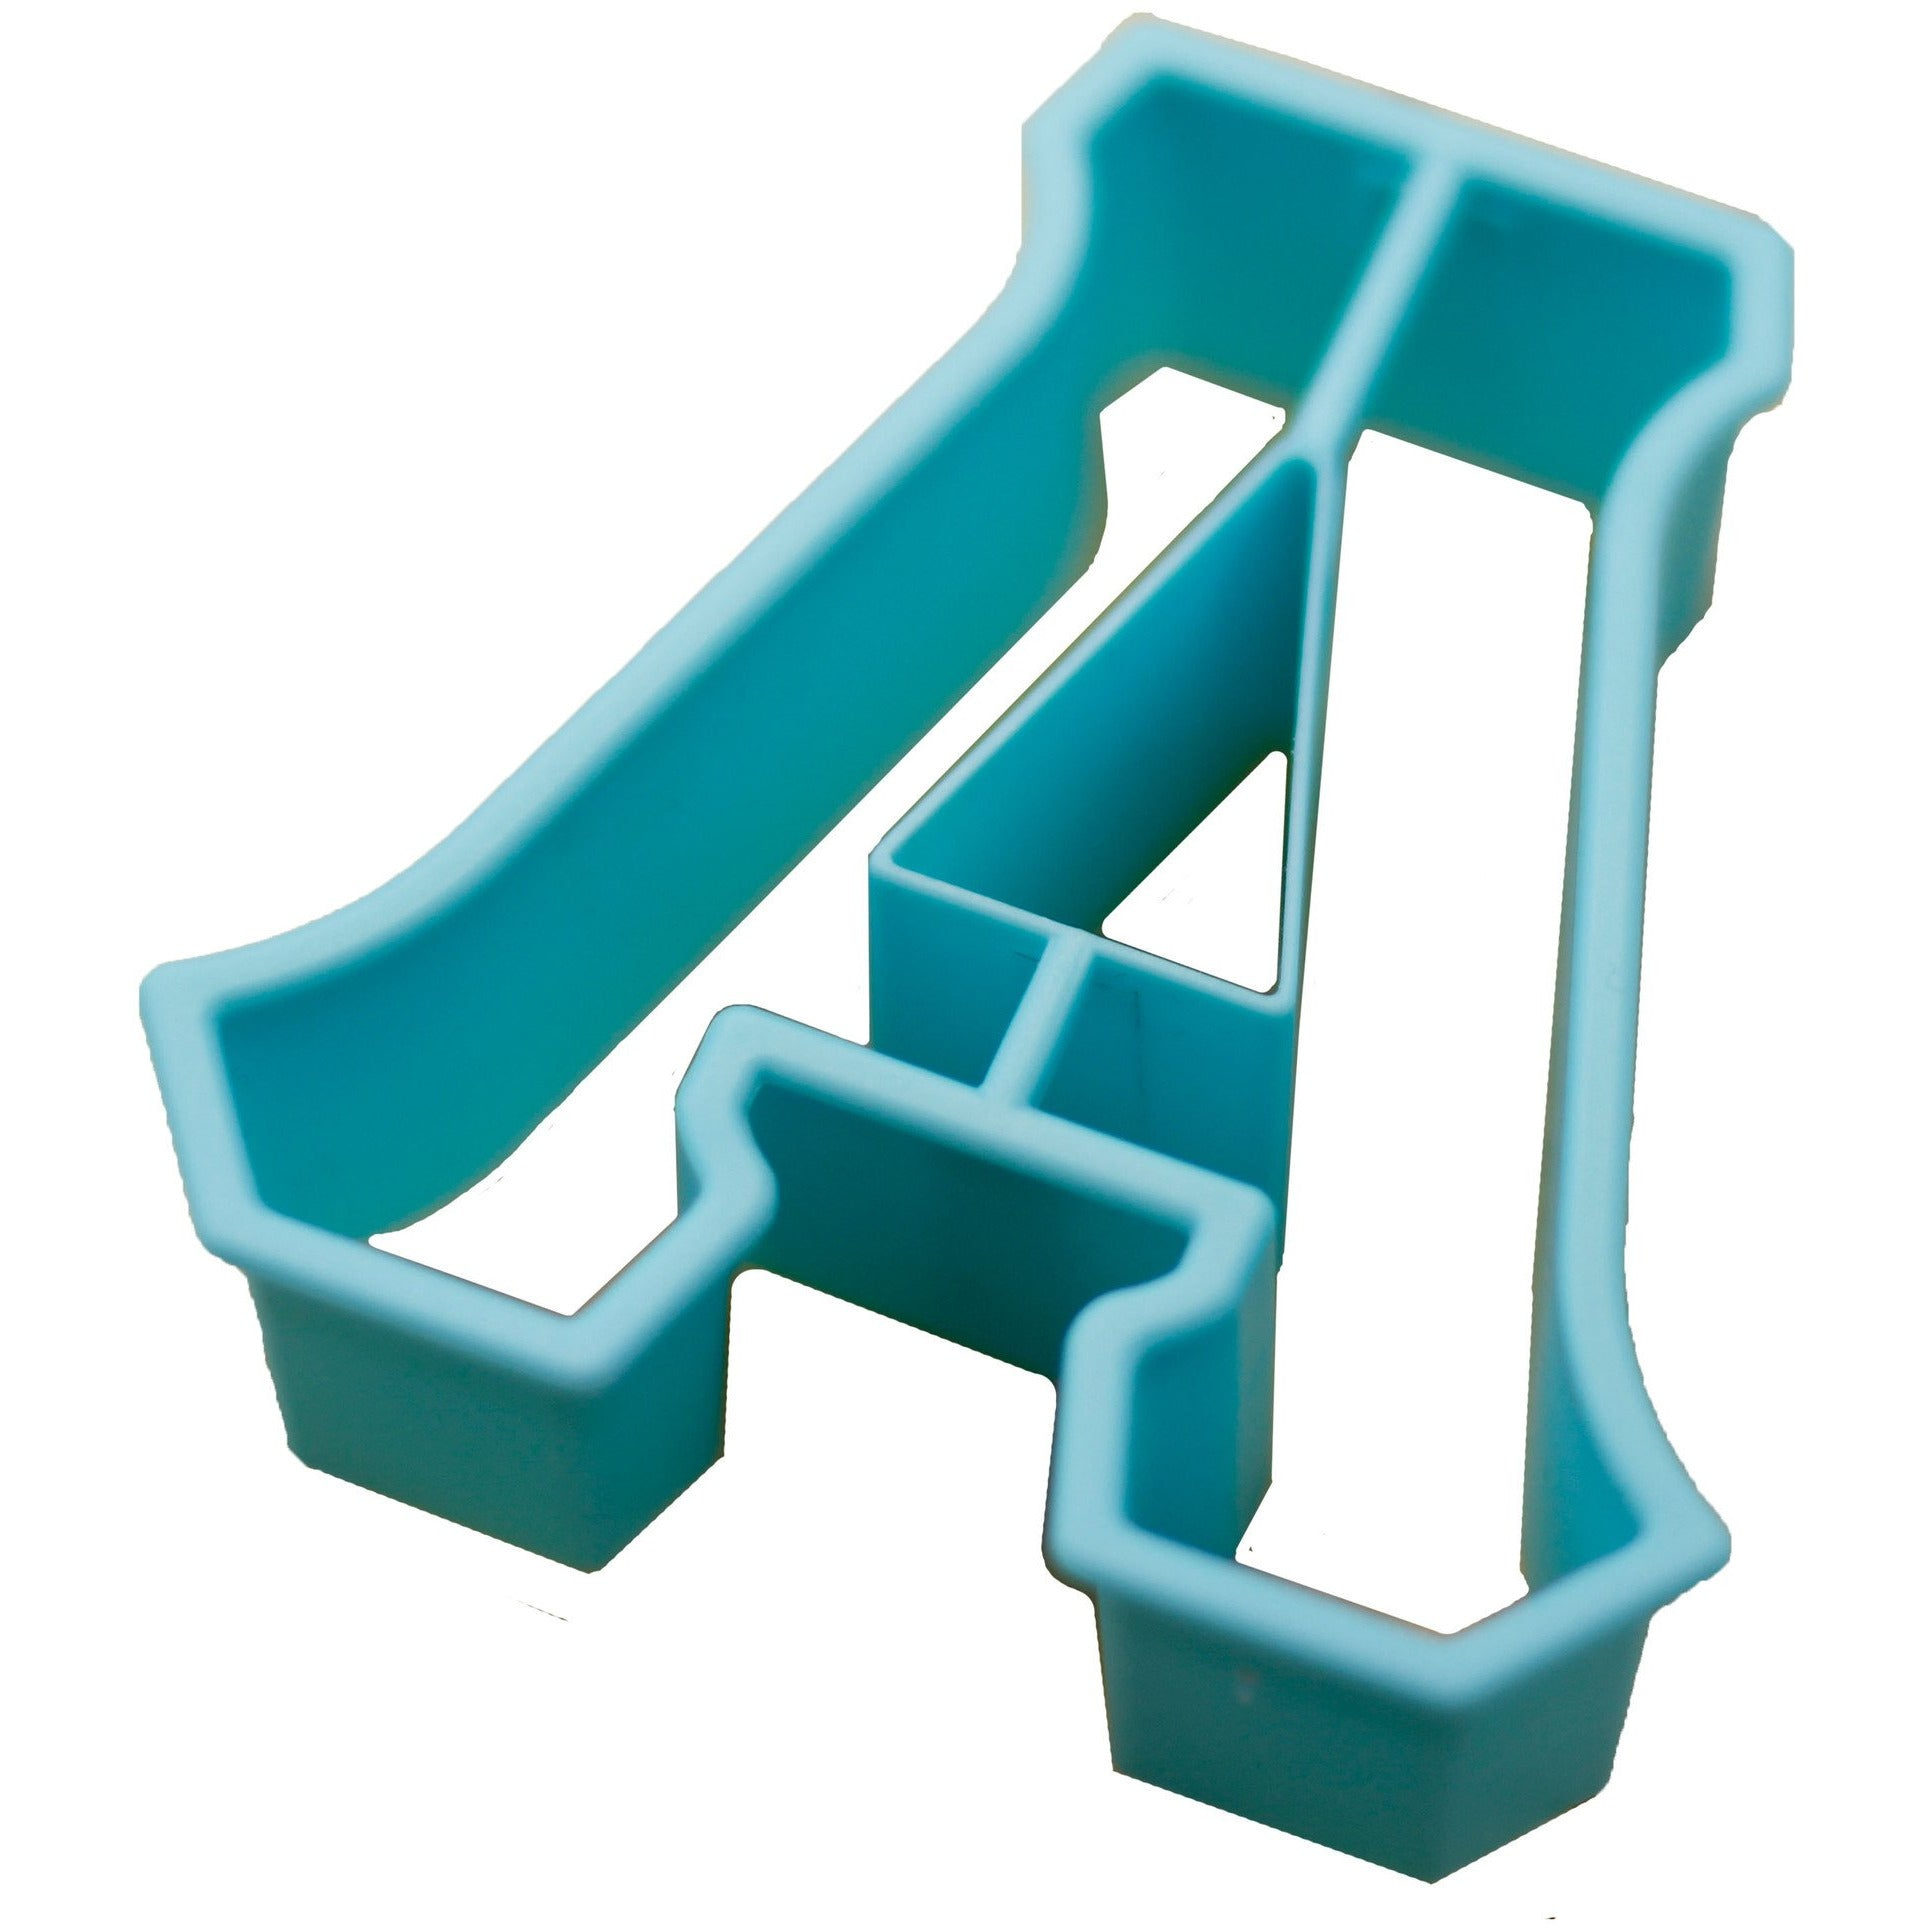 LiveGreek alphabet cookie cutter - Alpha shape - #LiveGreek #ScottKaminski #MiaKaminski #Panhellenic #sororitysupplies #bigsislilsis #students #college #rush #graduationgifts #sororityhouse #fraternal #fraternity #cookiecutters #artstencil #GreekAlphabet